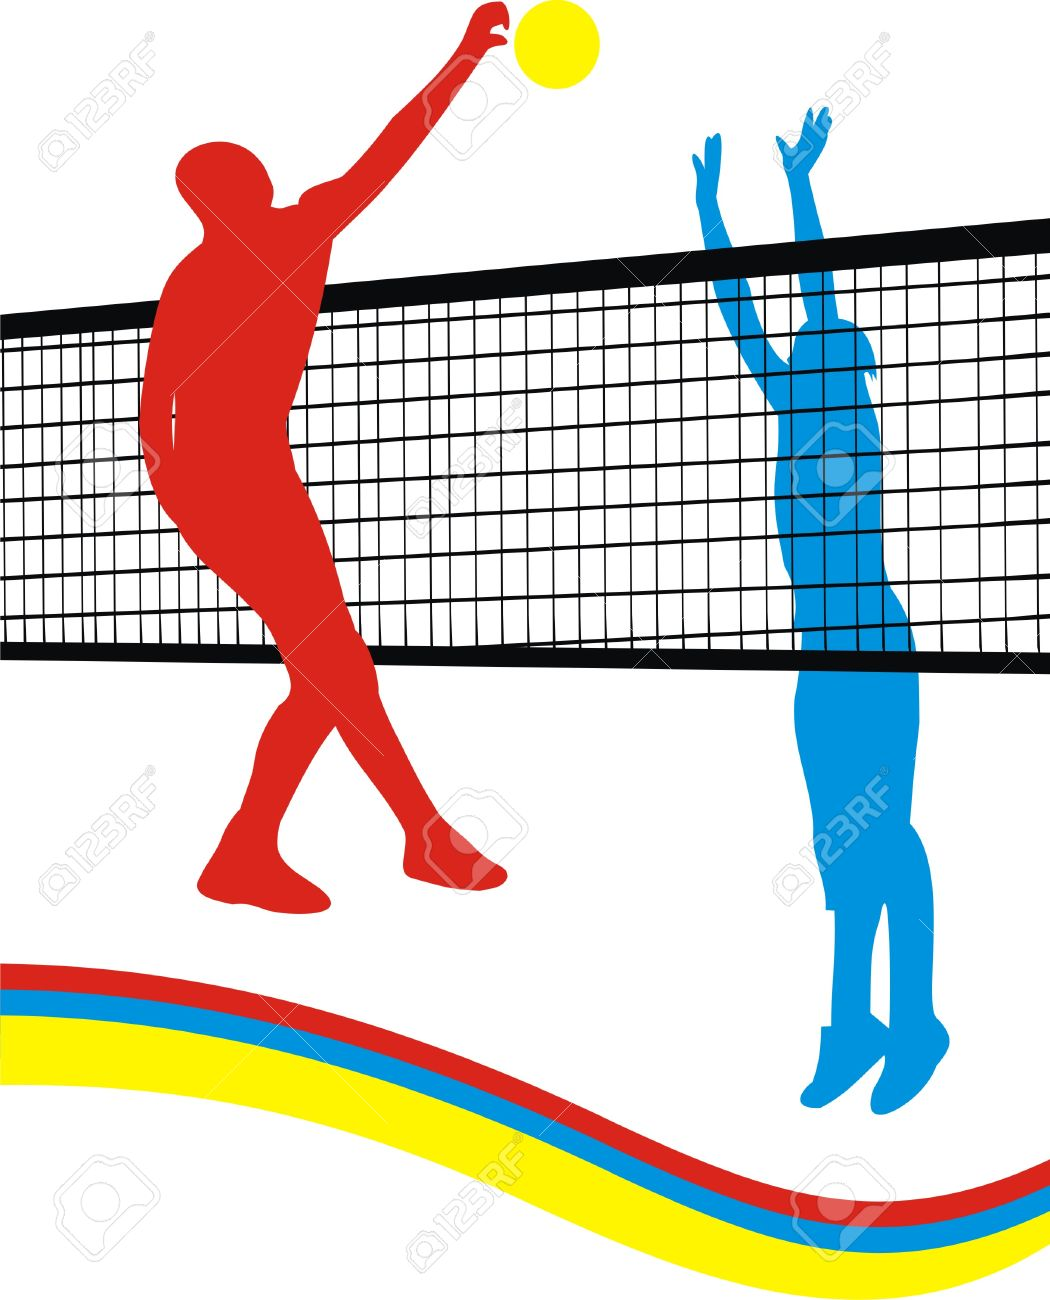 Colorful volleyball clipart 1 » Clipart Station.